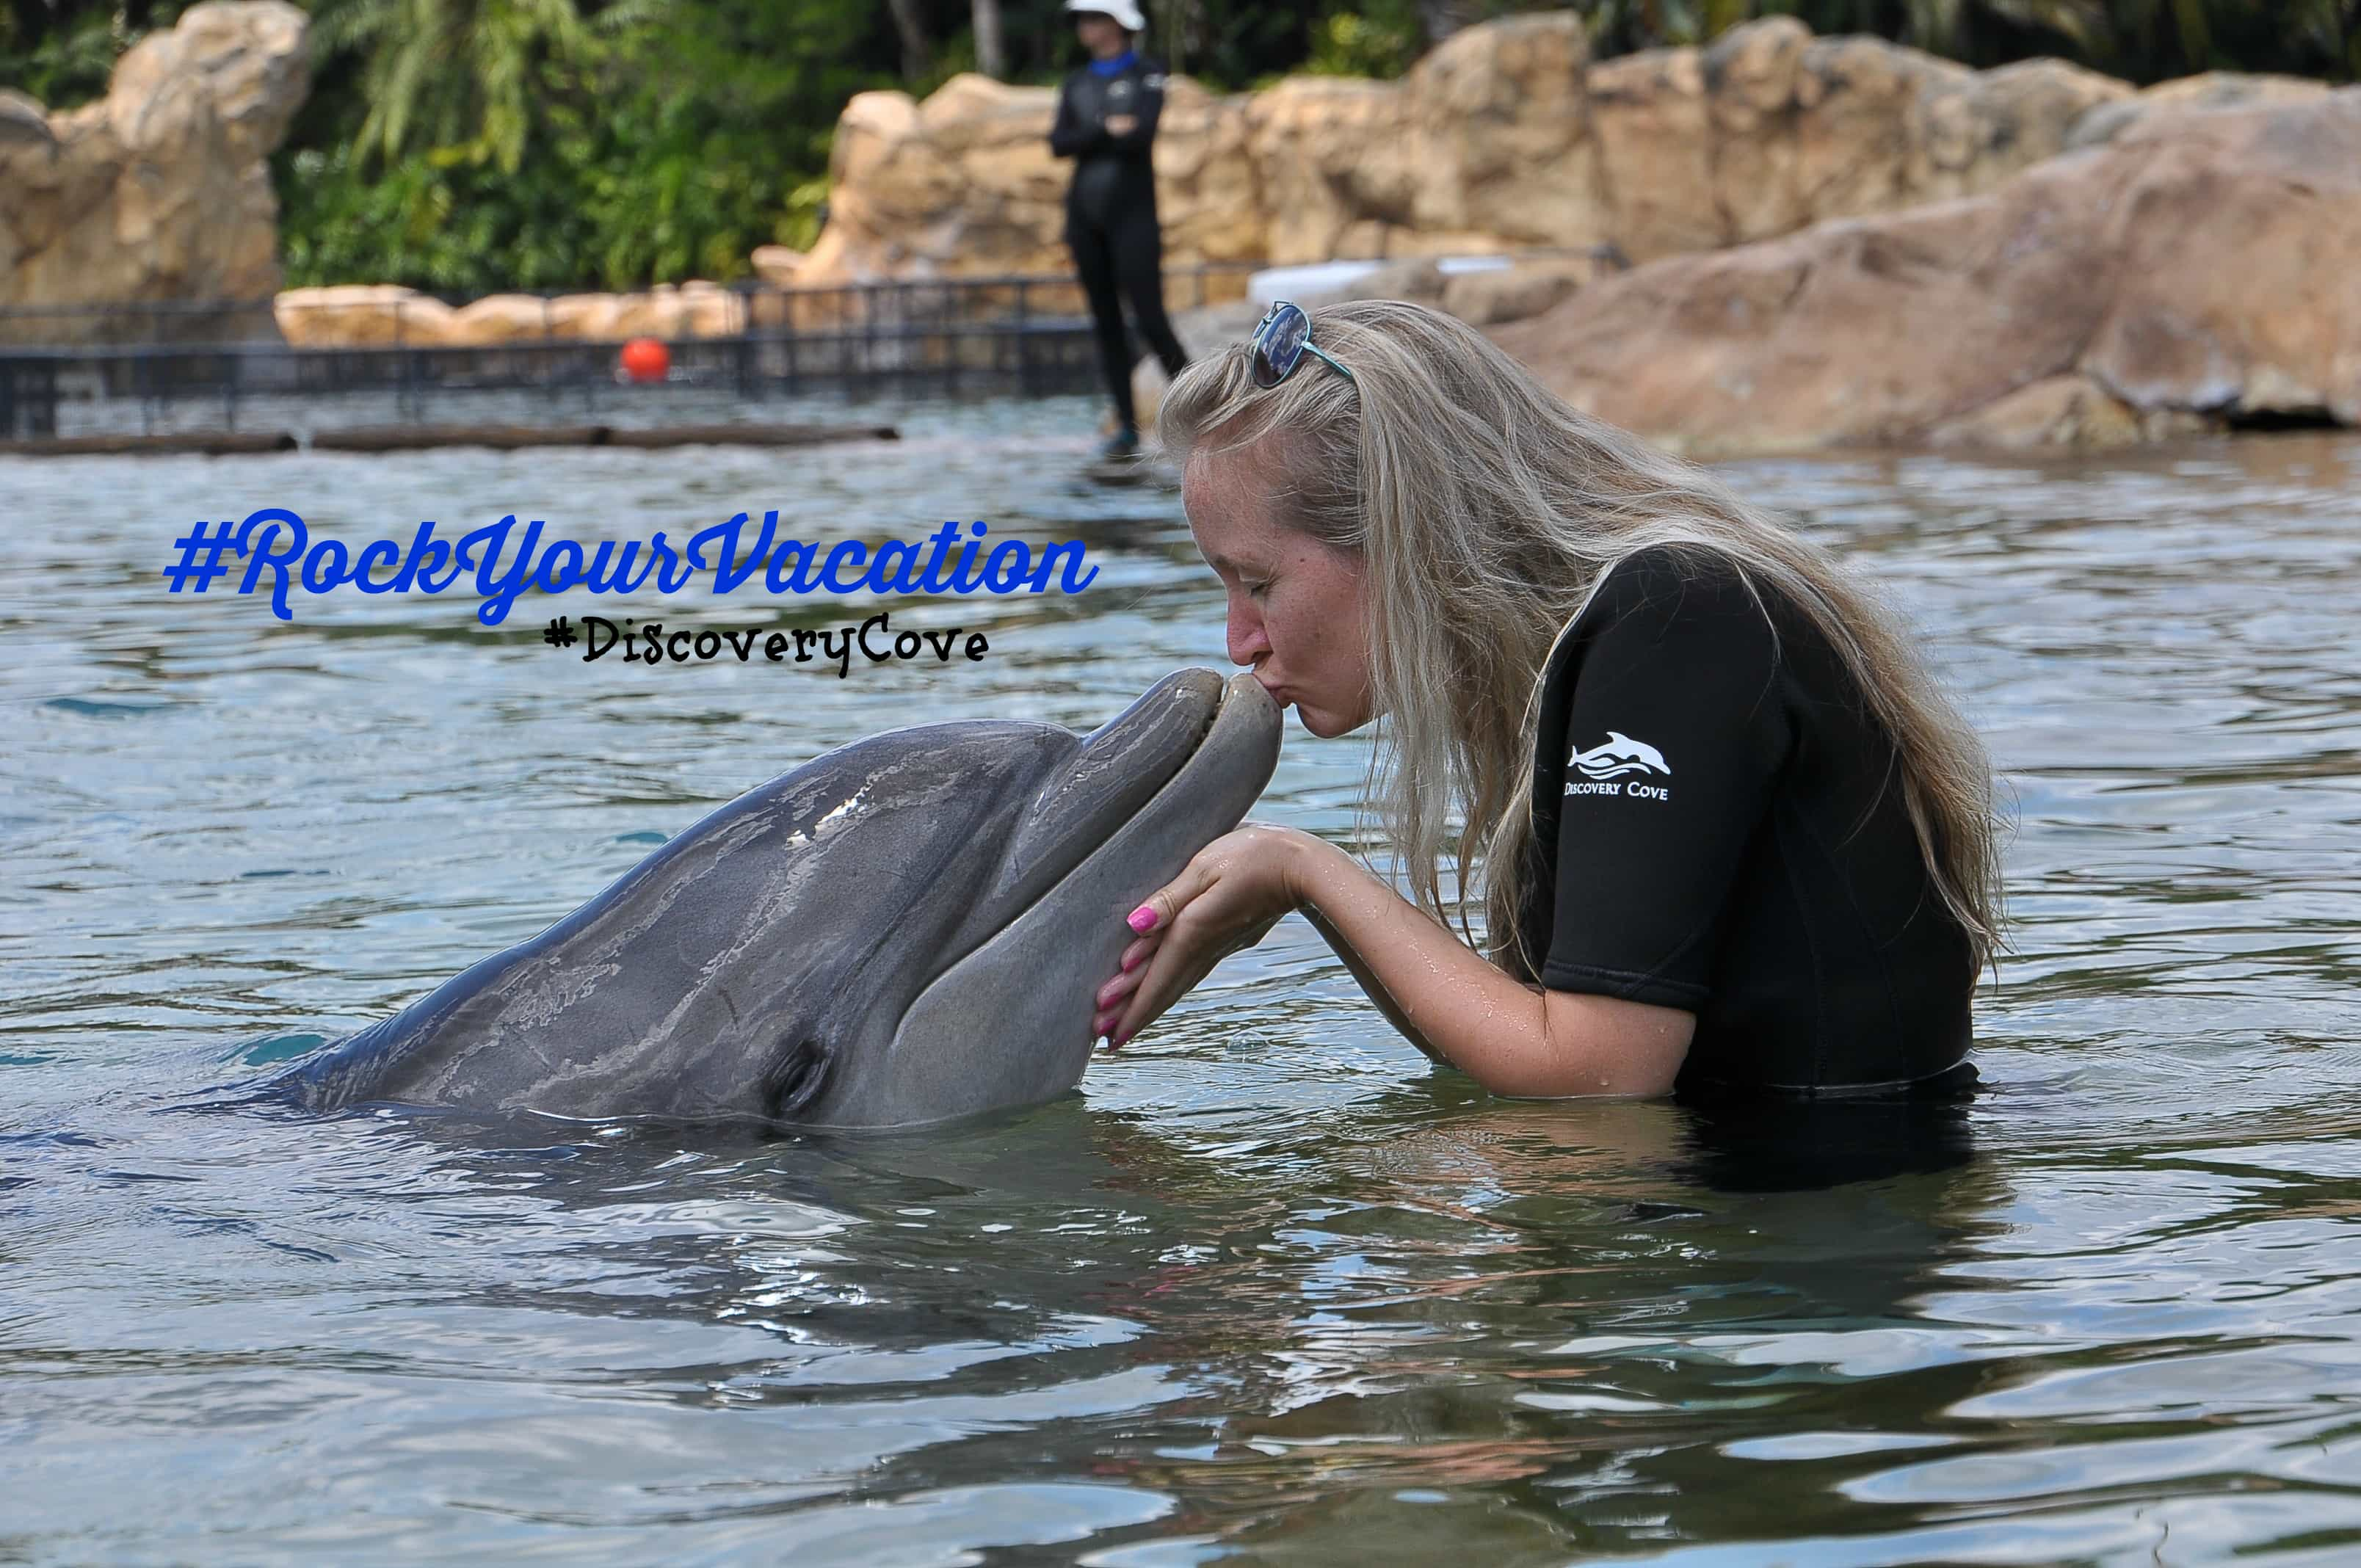 Dolphin kisses at Discovery Cove Orlando #RockYourVacation